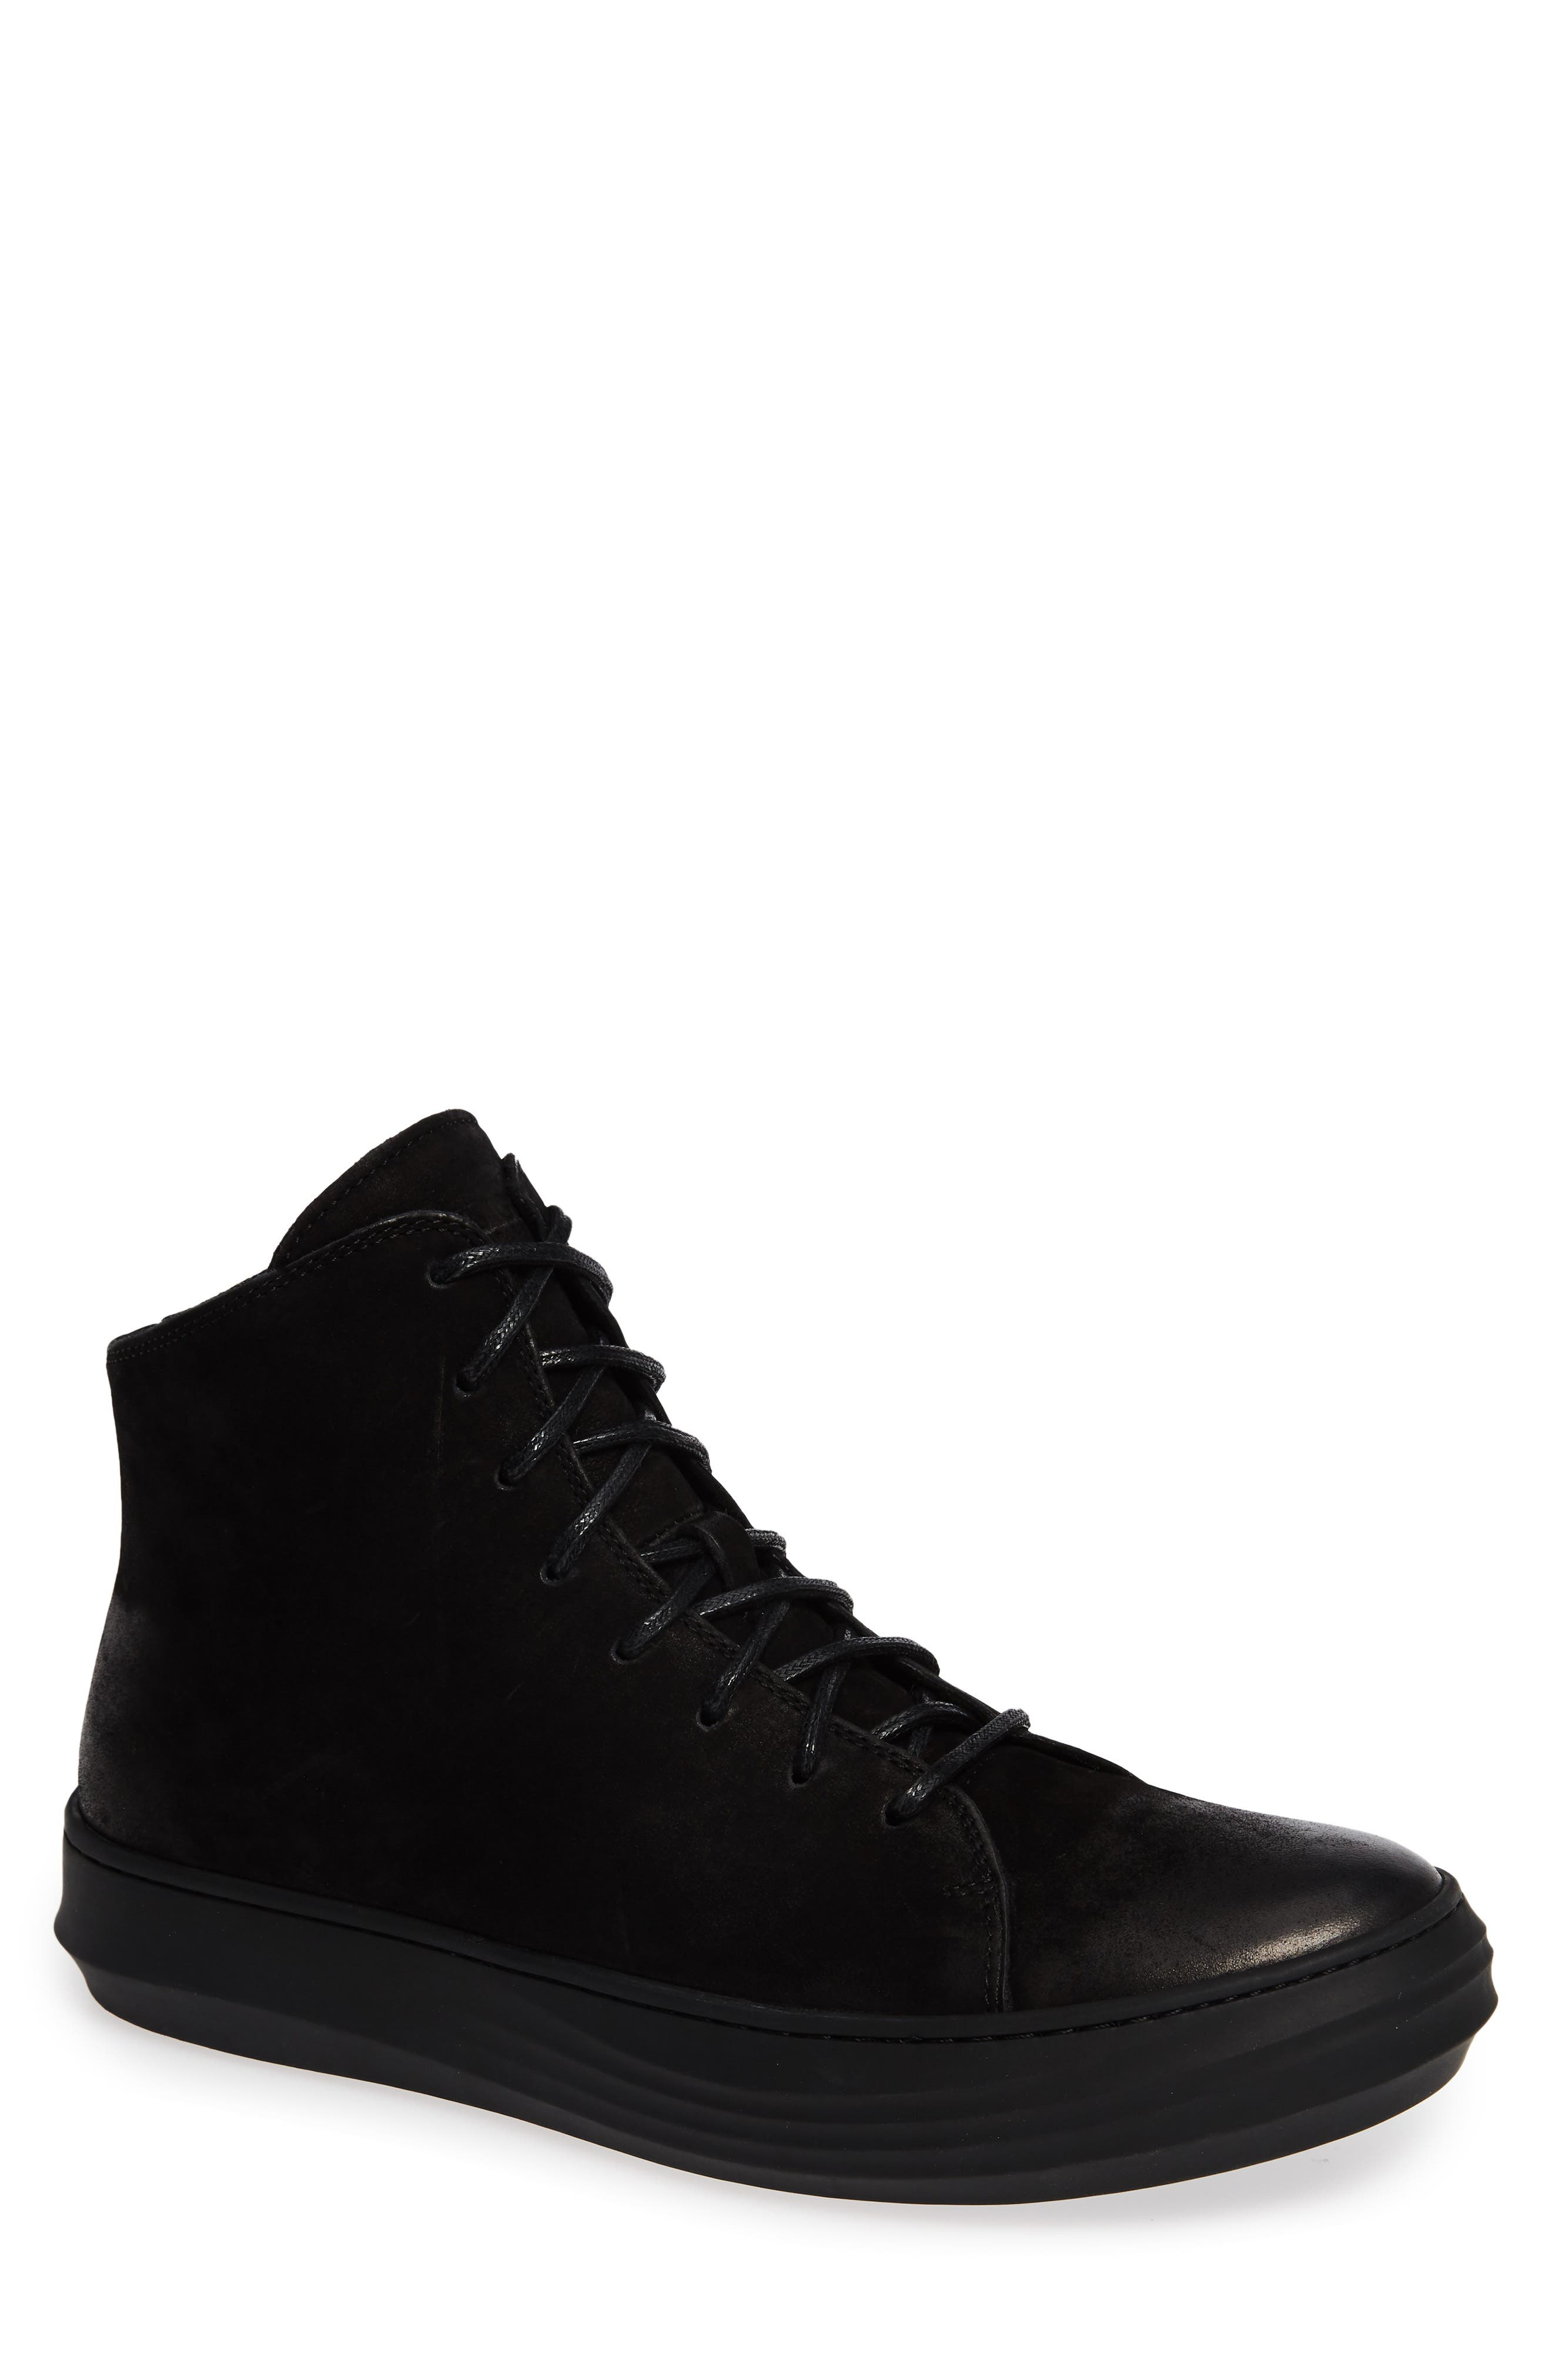 High Top Sneaker,                         Main,                         color, BLACK LEATHER